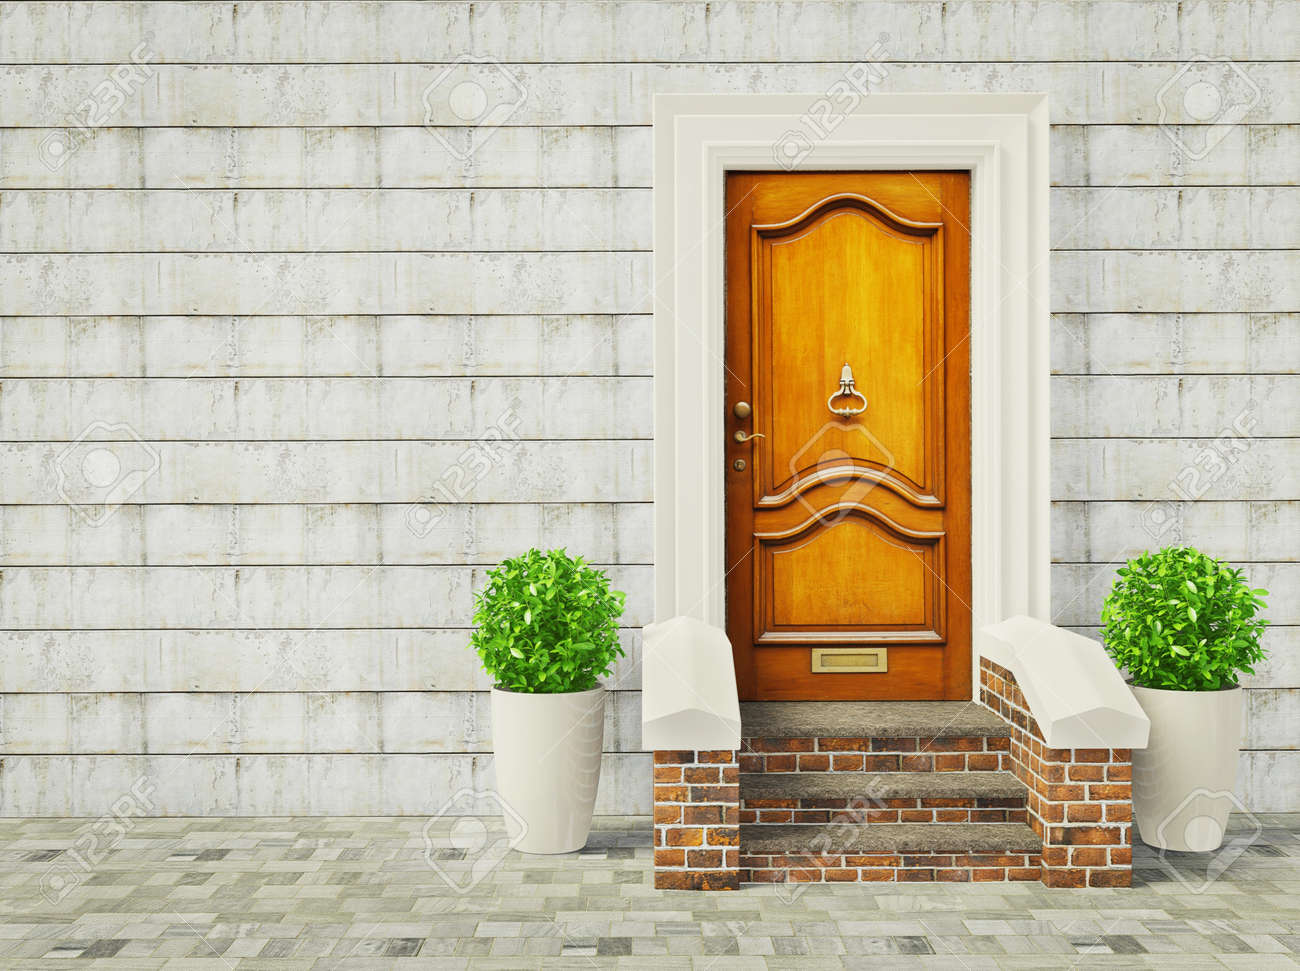 Stock Photo - vintage door and two plants near wall. & Vintage Door And Two Plants Near Wall. Stock Photo Picture And ...